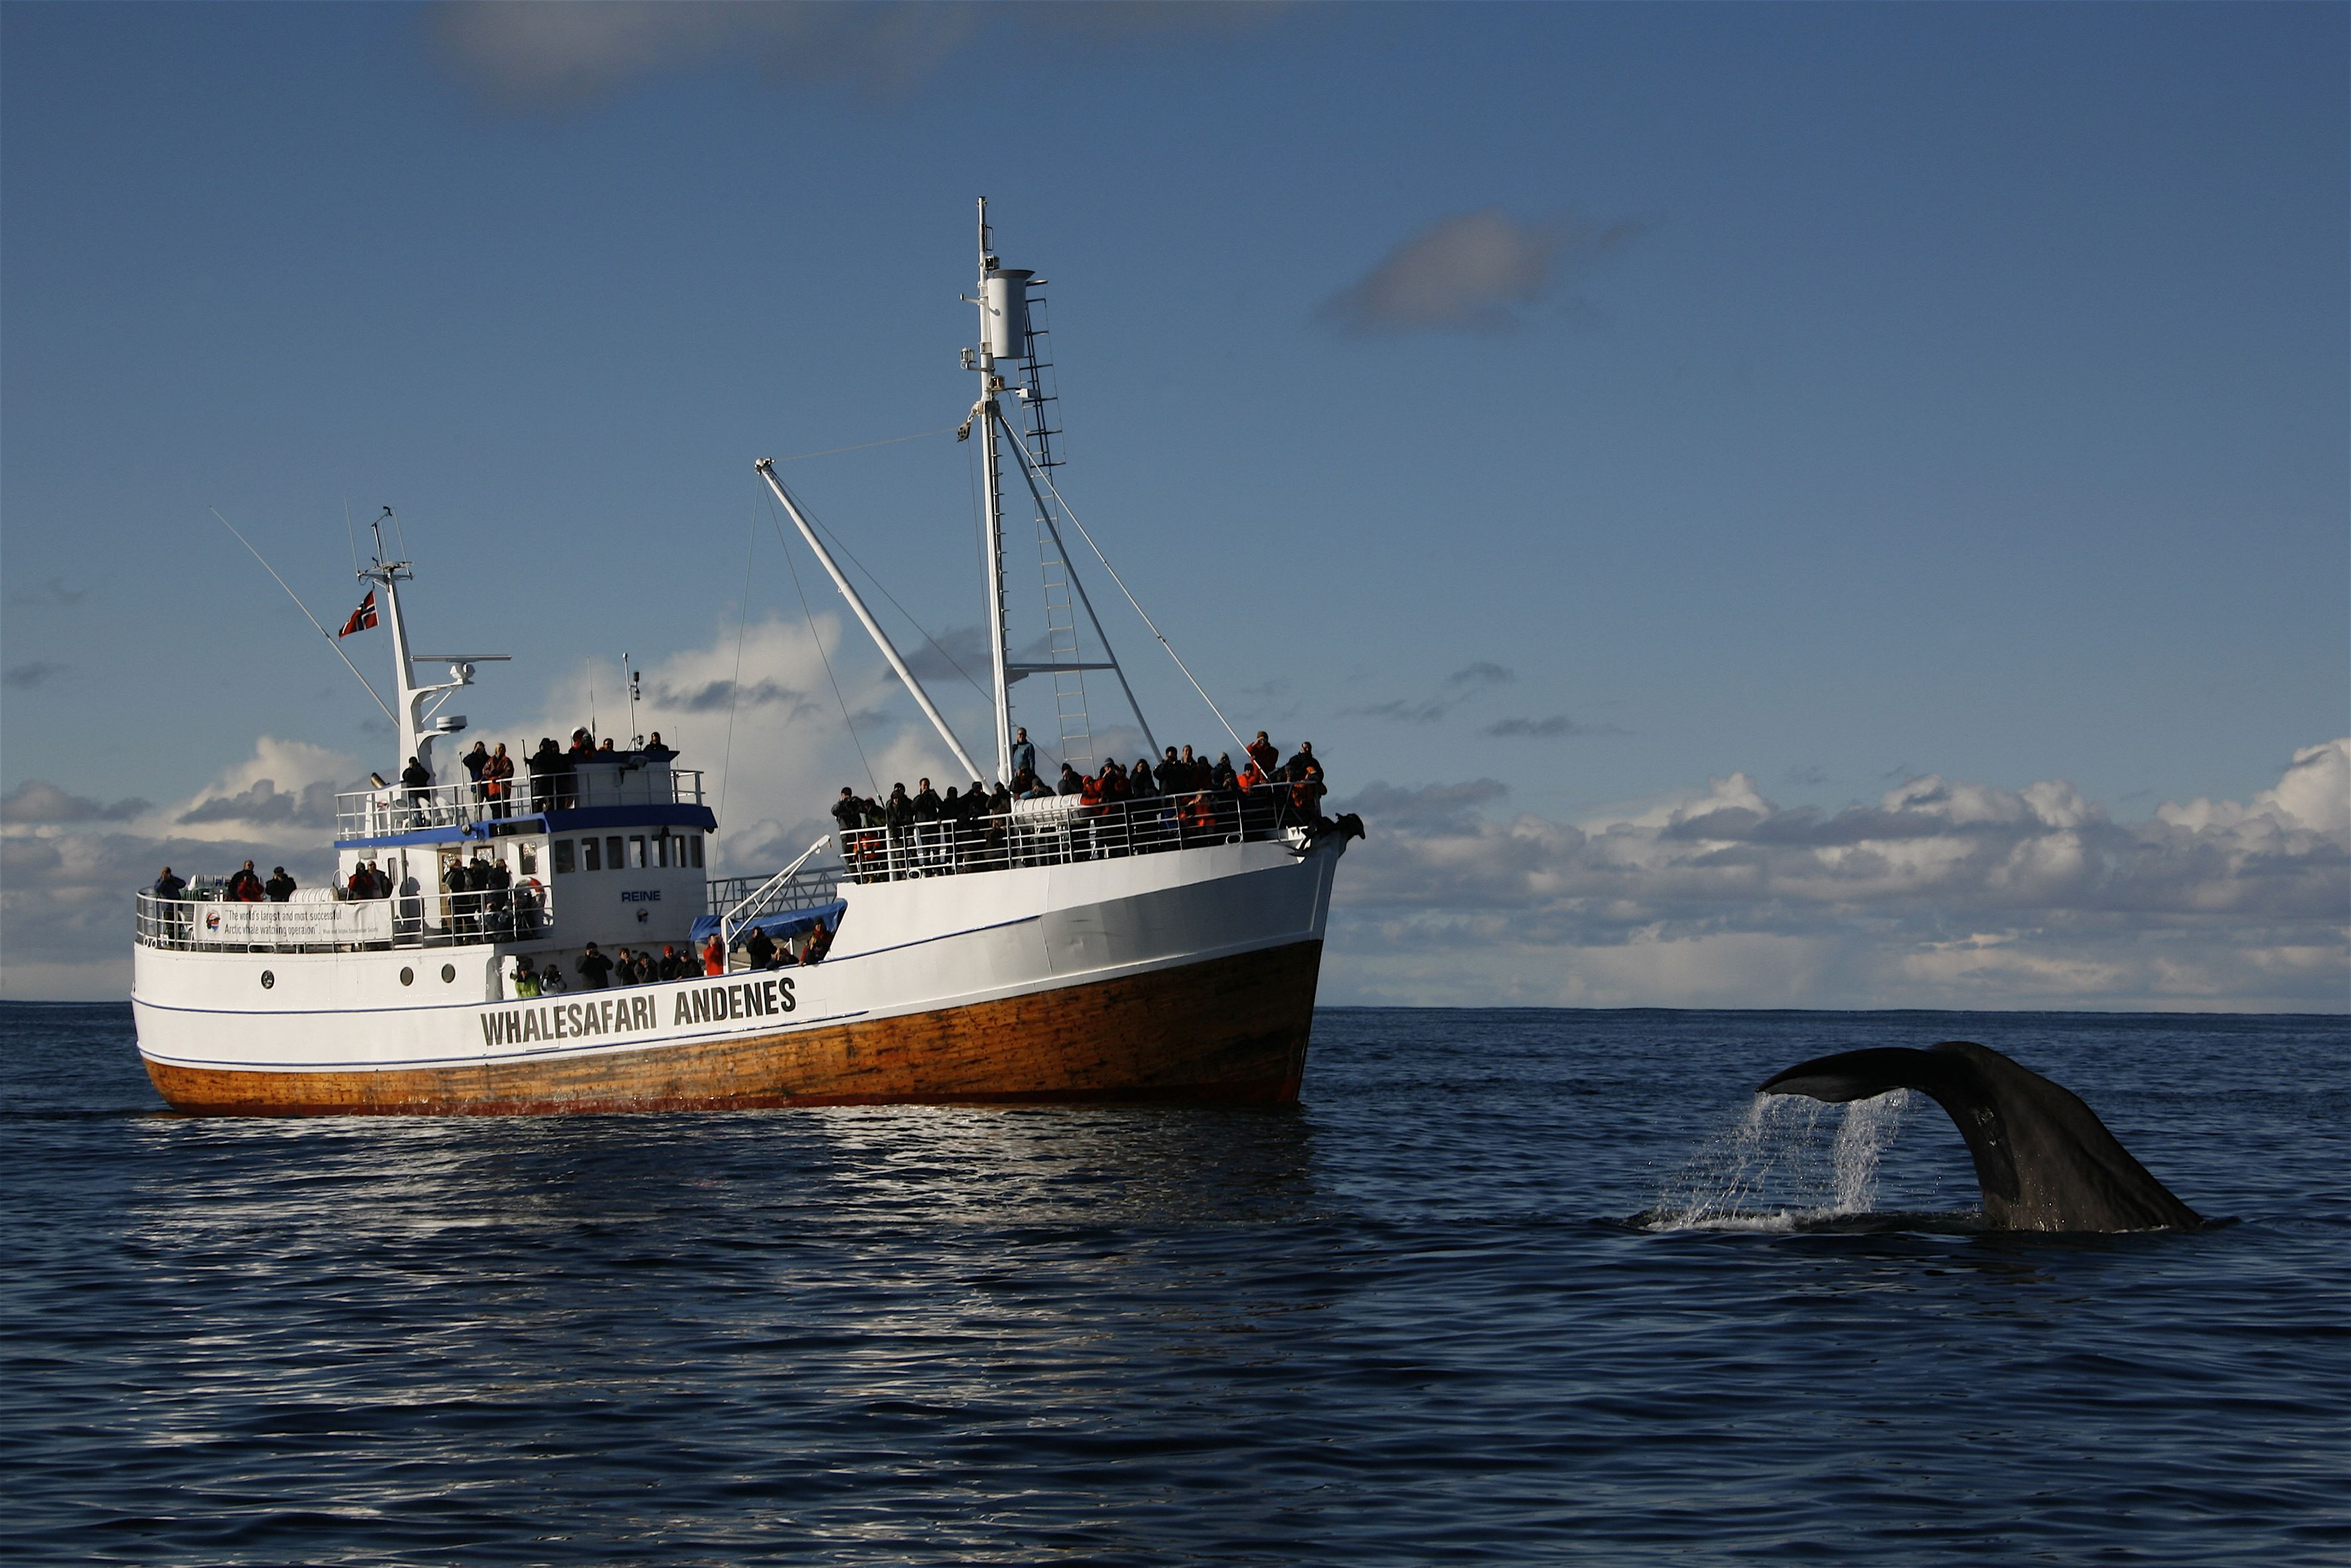 © Hvalsafari AS, Whale Safari Andenes – Hvalsafari AS